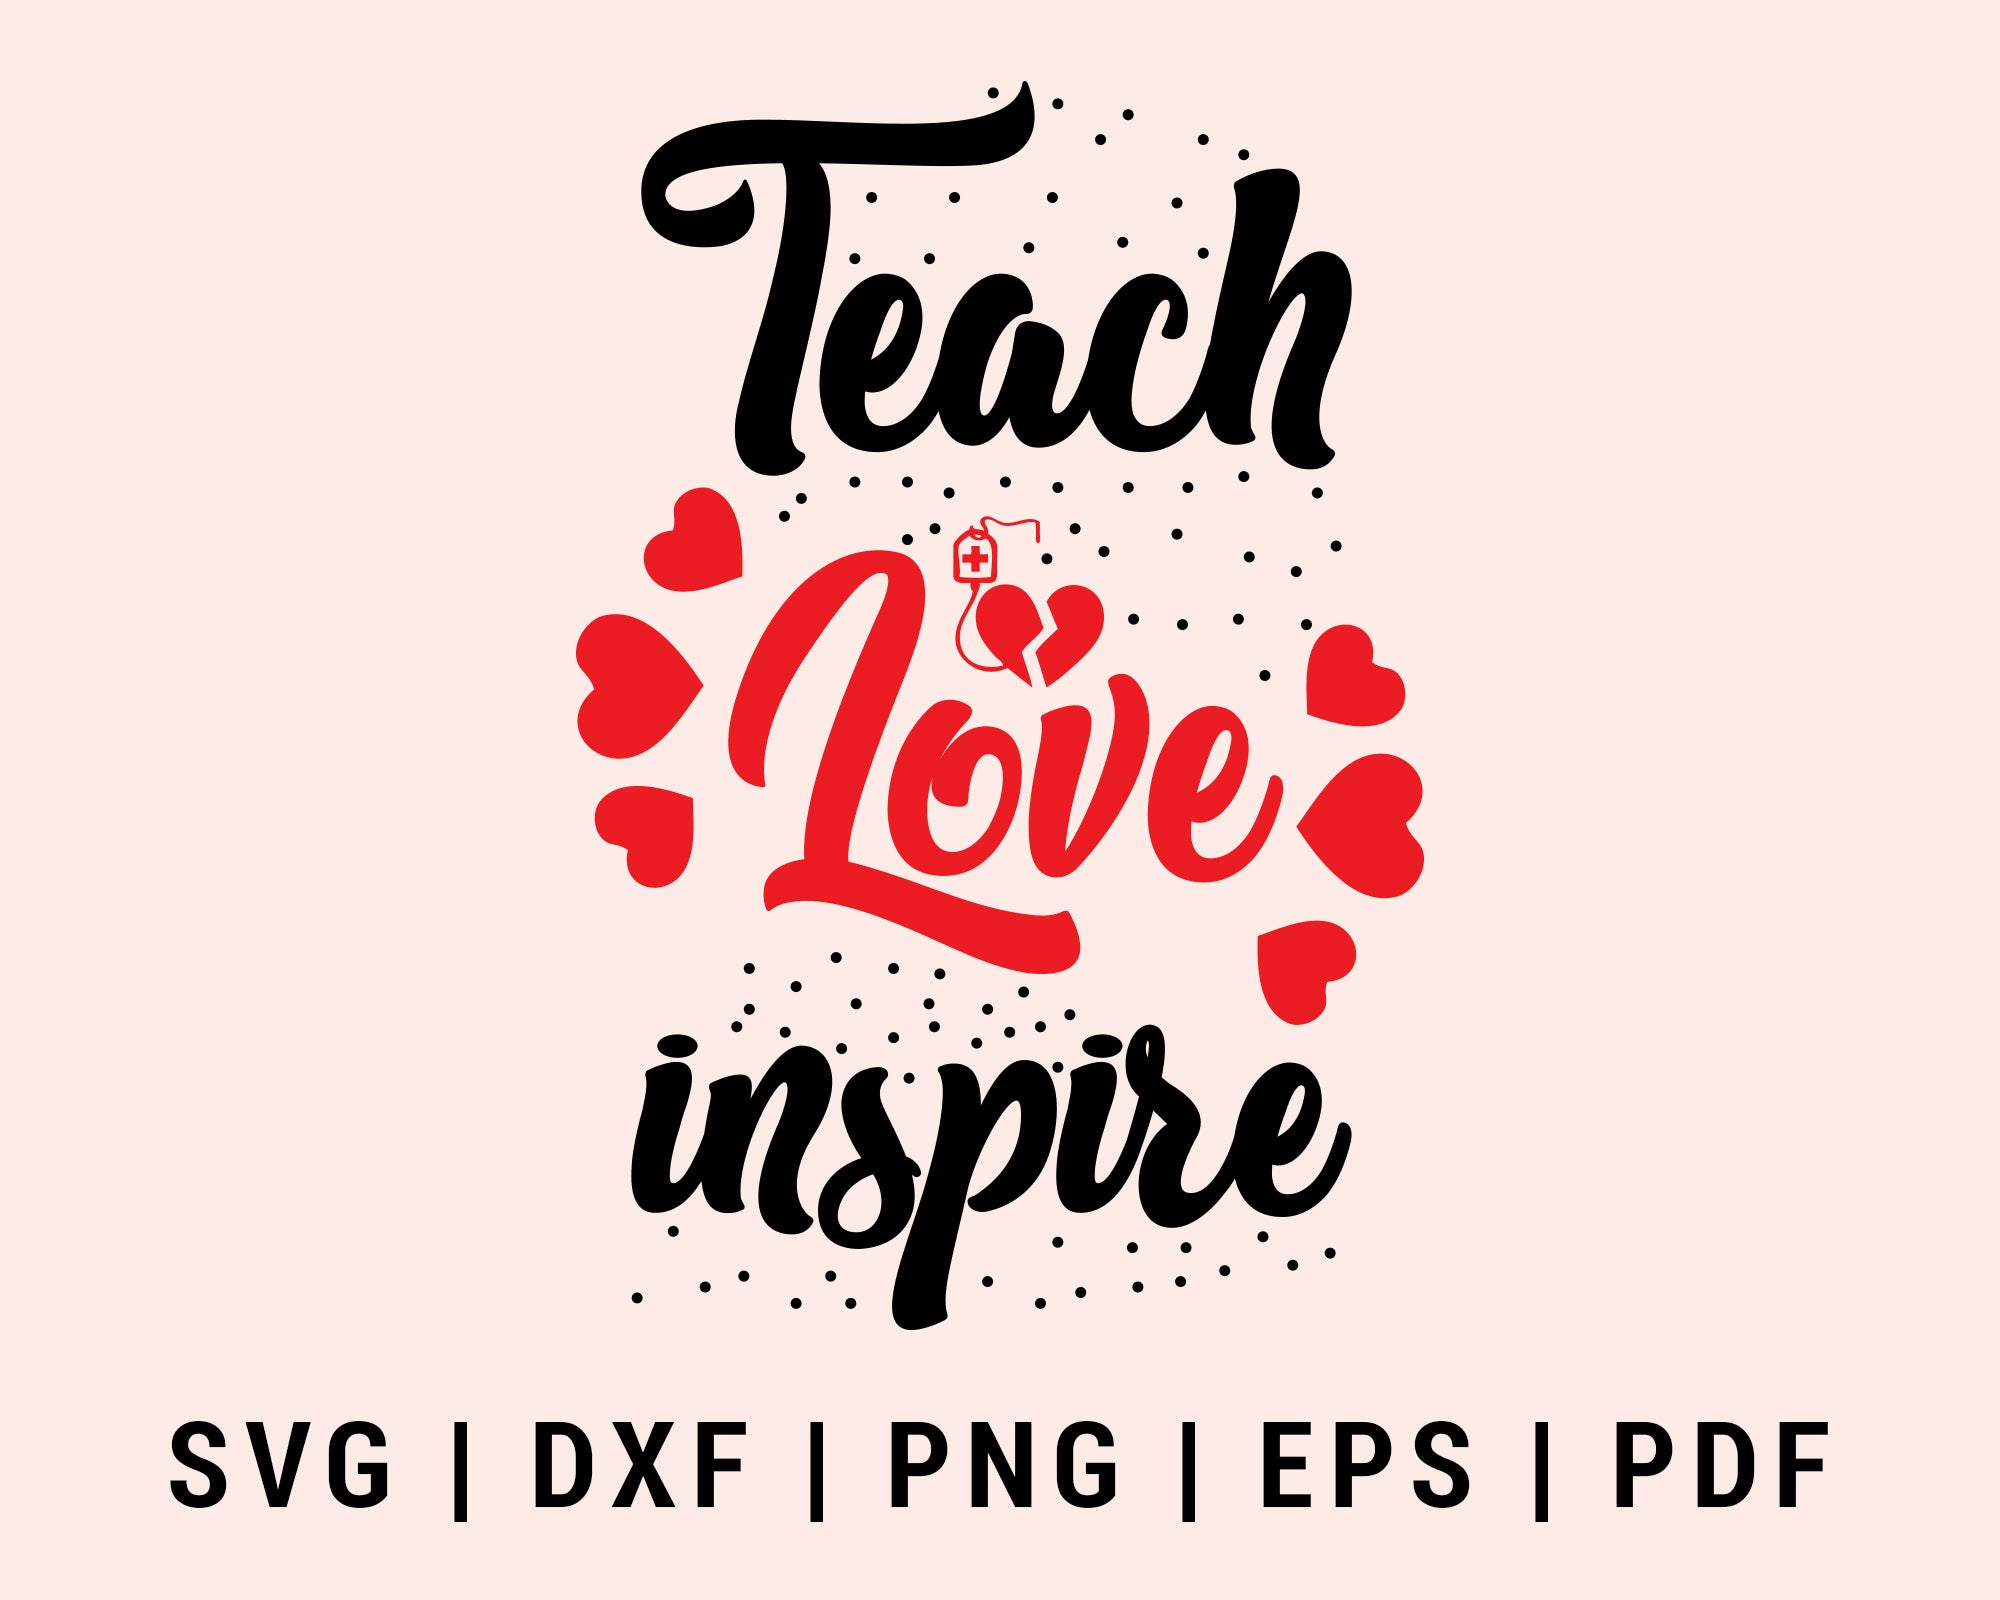 25+ Teach Love Inspire Svg Dxf Eps Png Cut File Ò Cricut Ò Silhouette Design